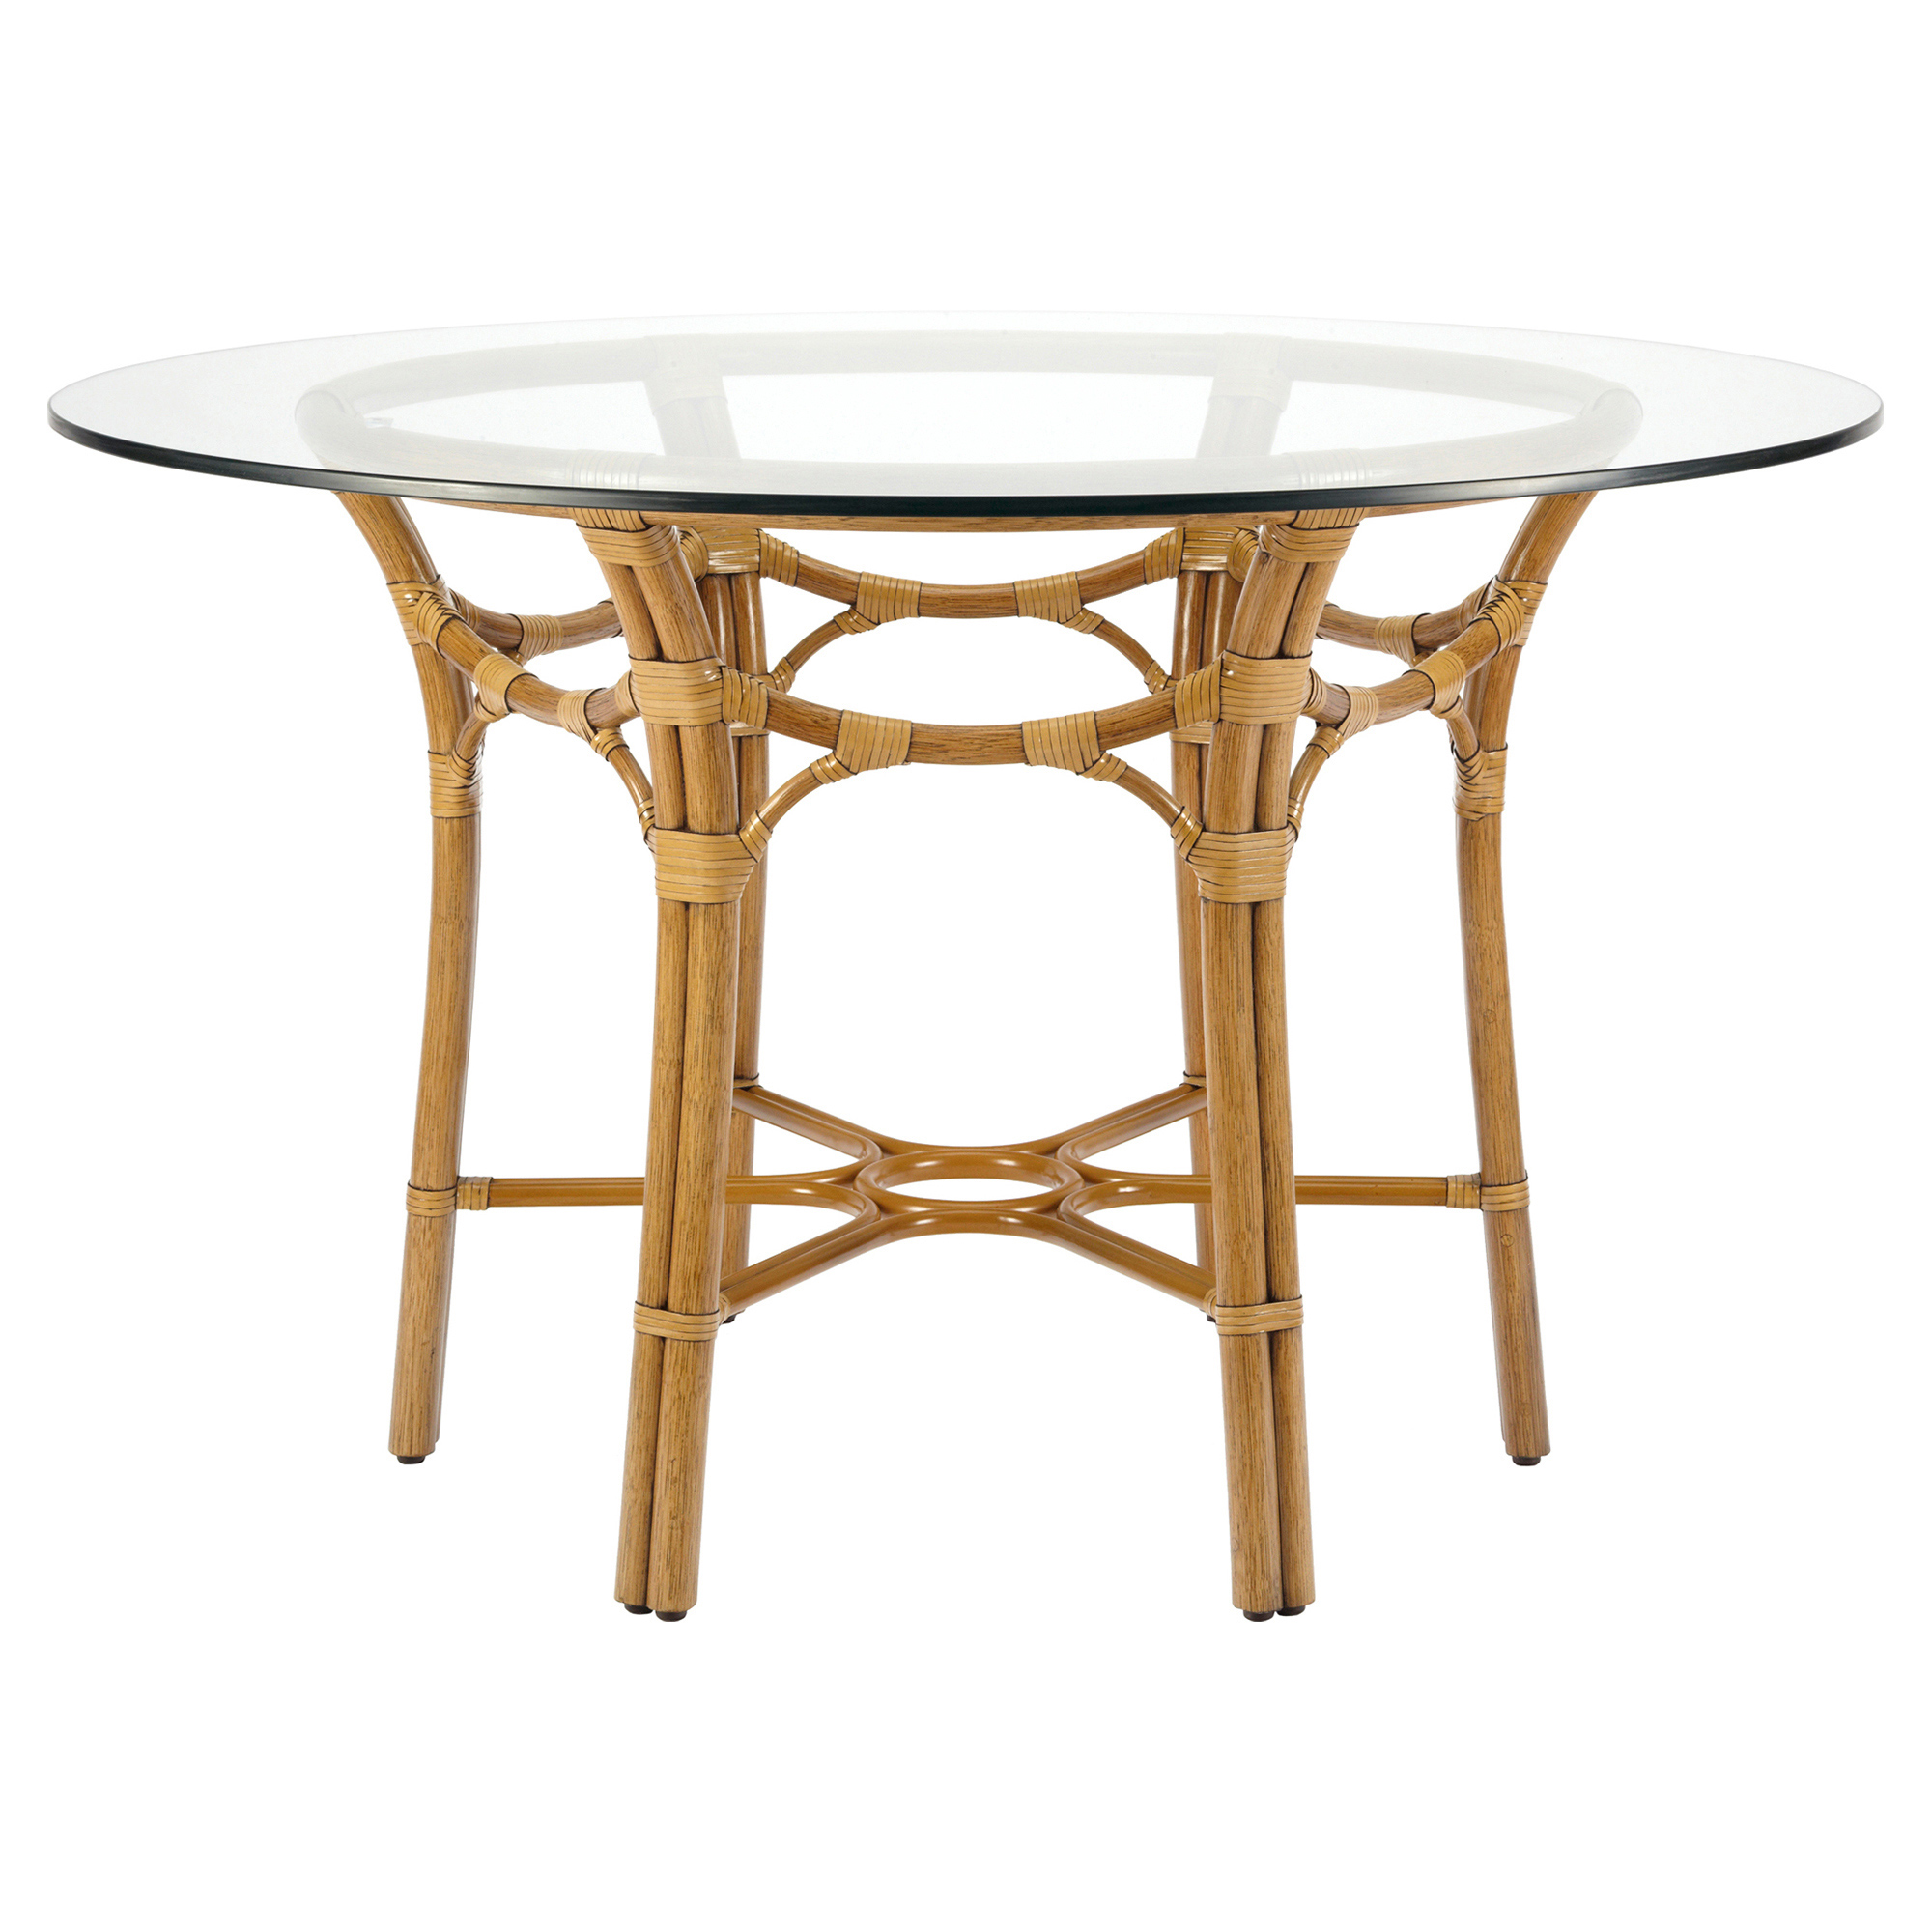 Arietta Global Bazaar Gothic Rattan Dining Table - Tan